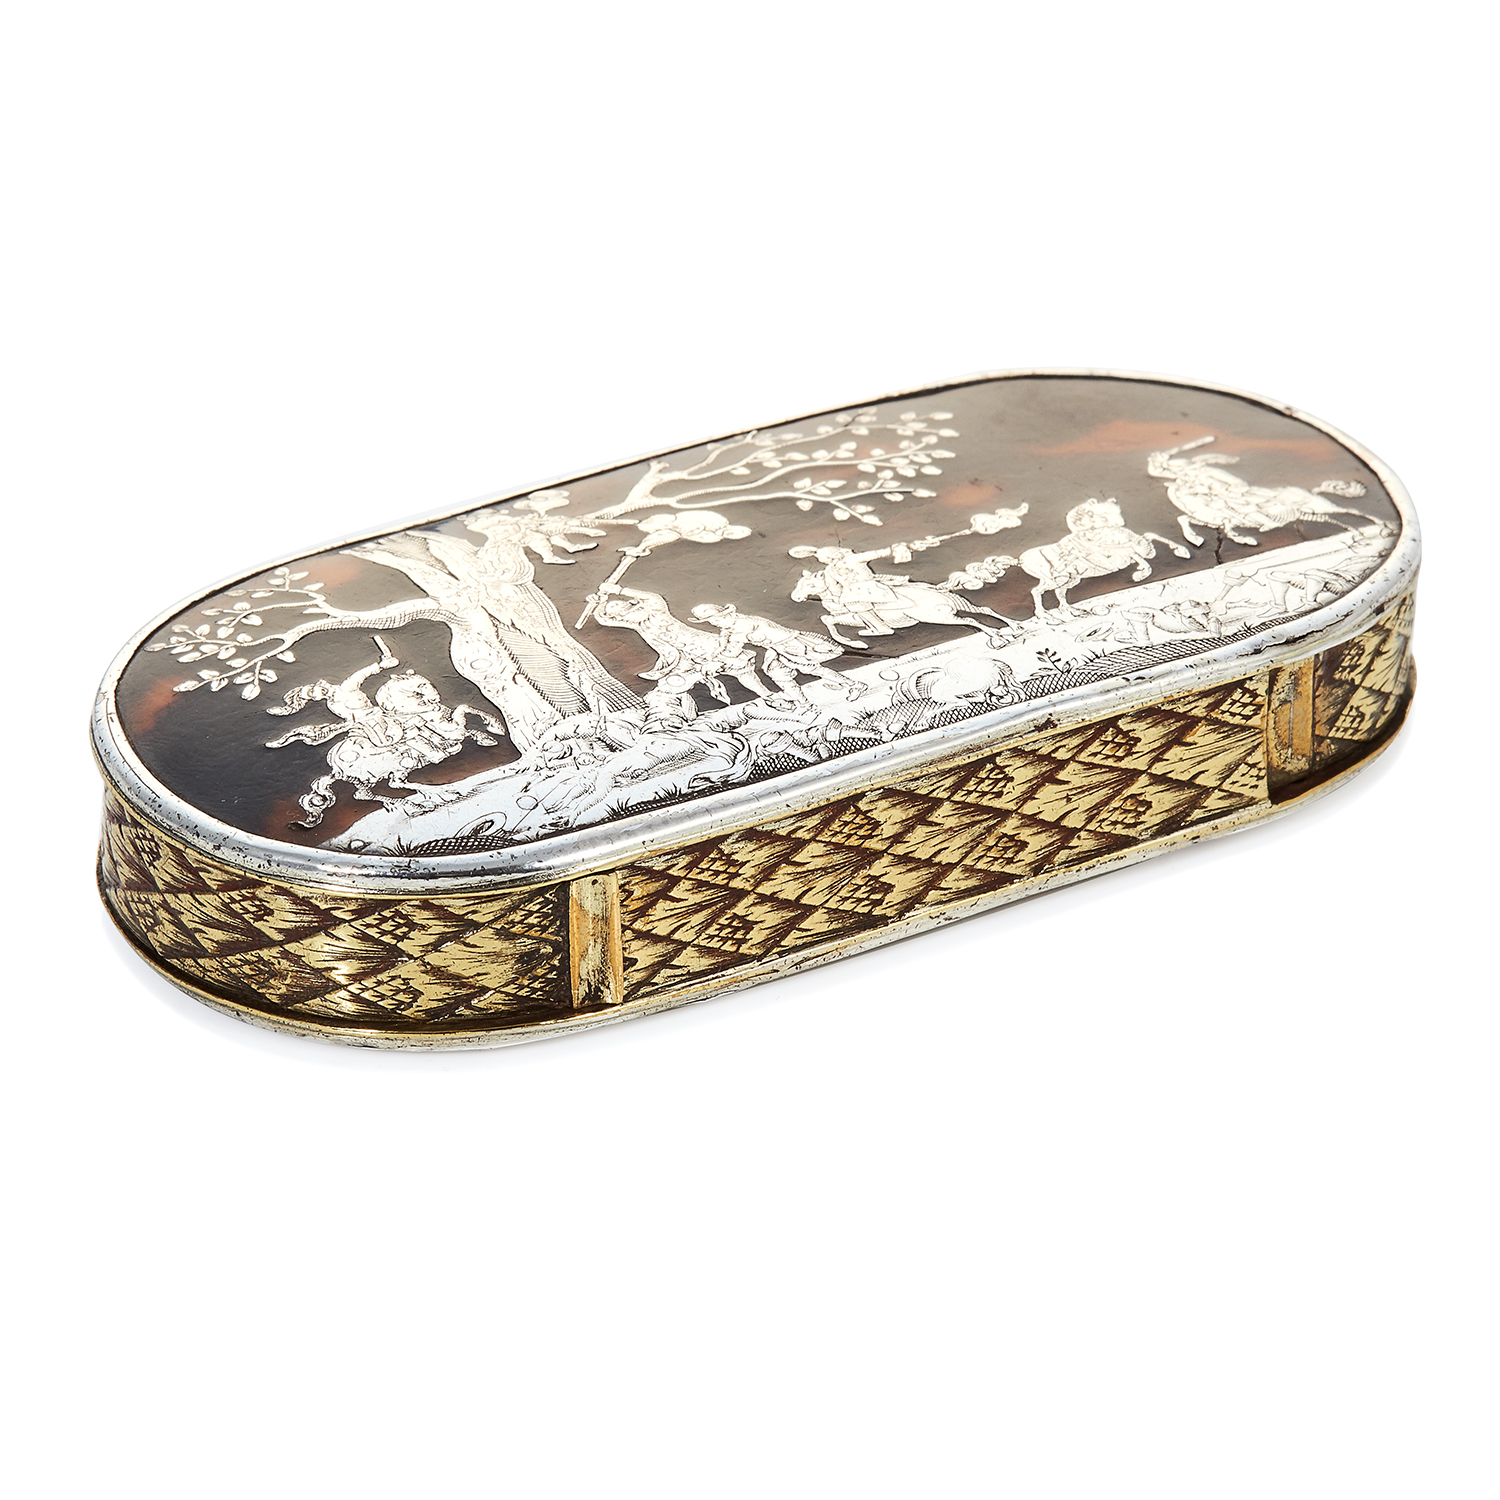 Los 379 - AN ANTIQUE TORTOISESHELL SNUFF BOX, 19TH CENTURY in silver, the oval body with tortoiseshell lid and